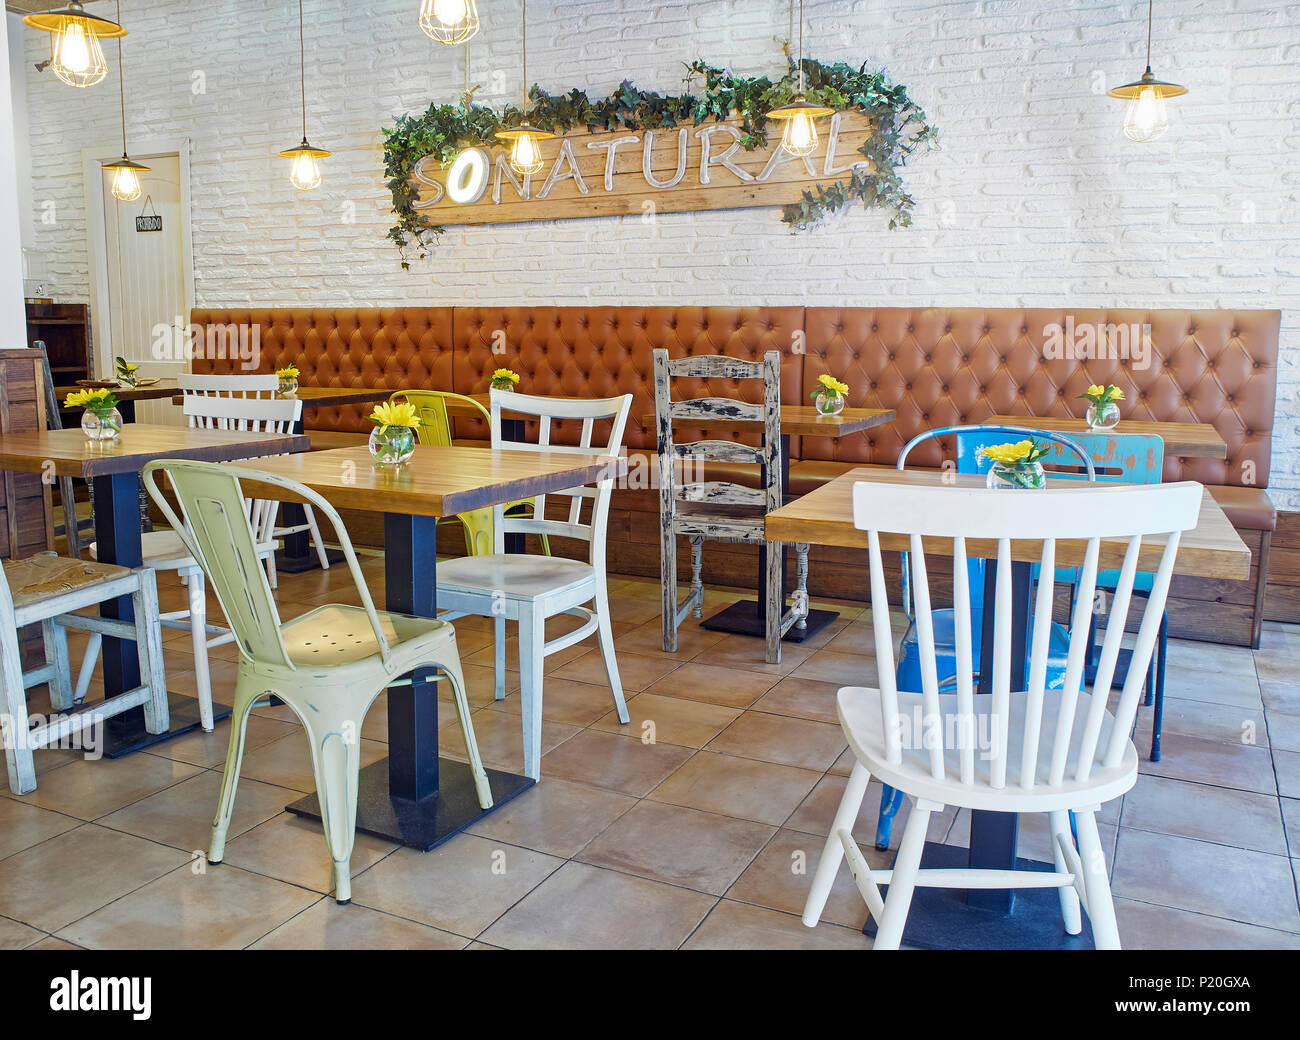 Cozy Vintage Style Coffee Shop Interior With A White Brick Wall